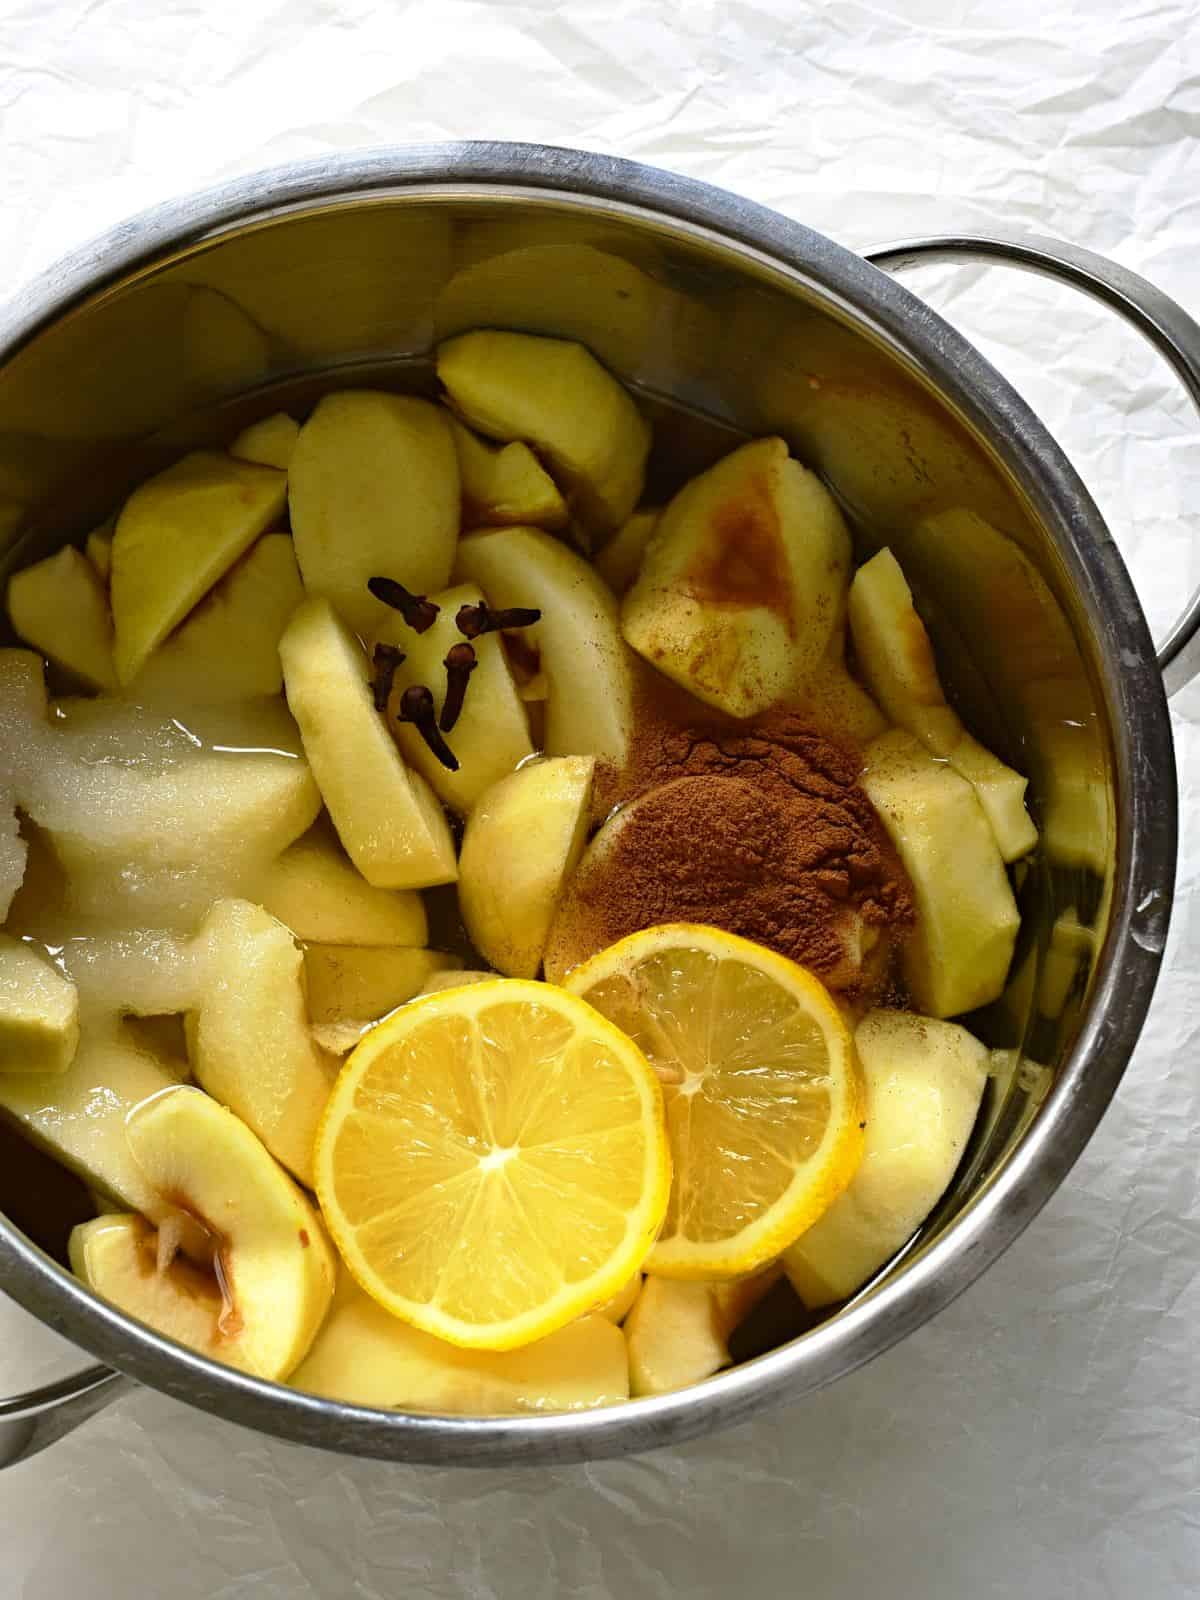 Making apple compote.